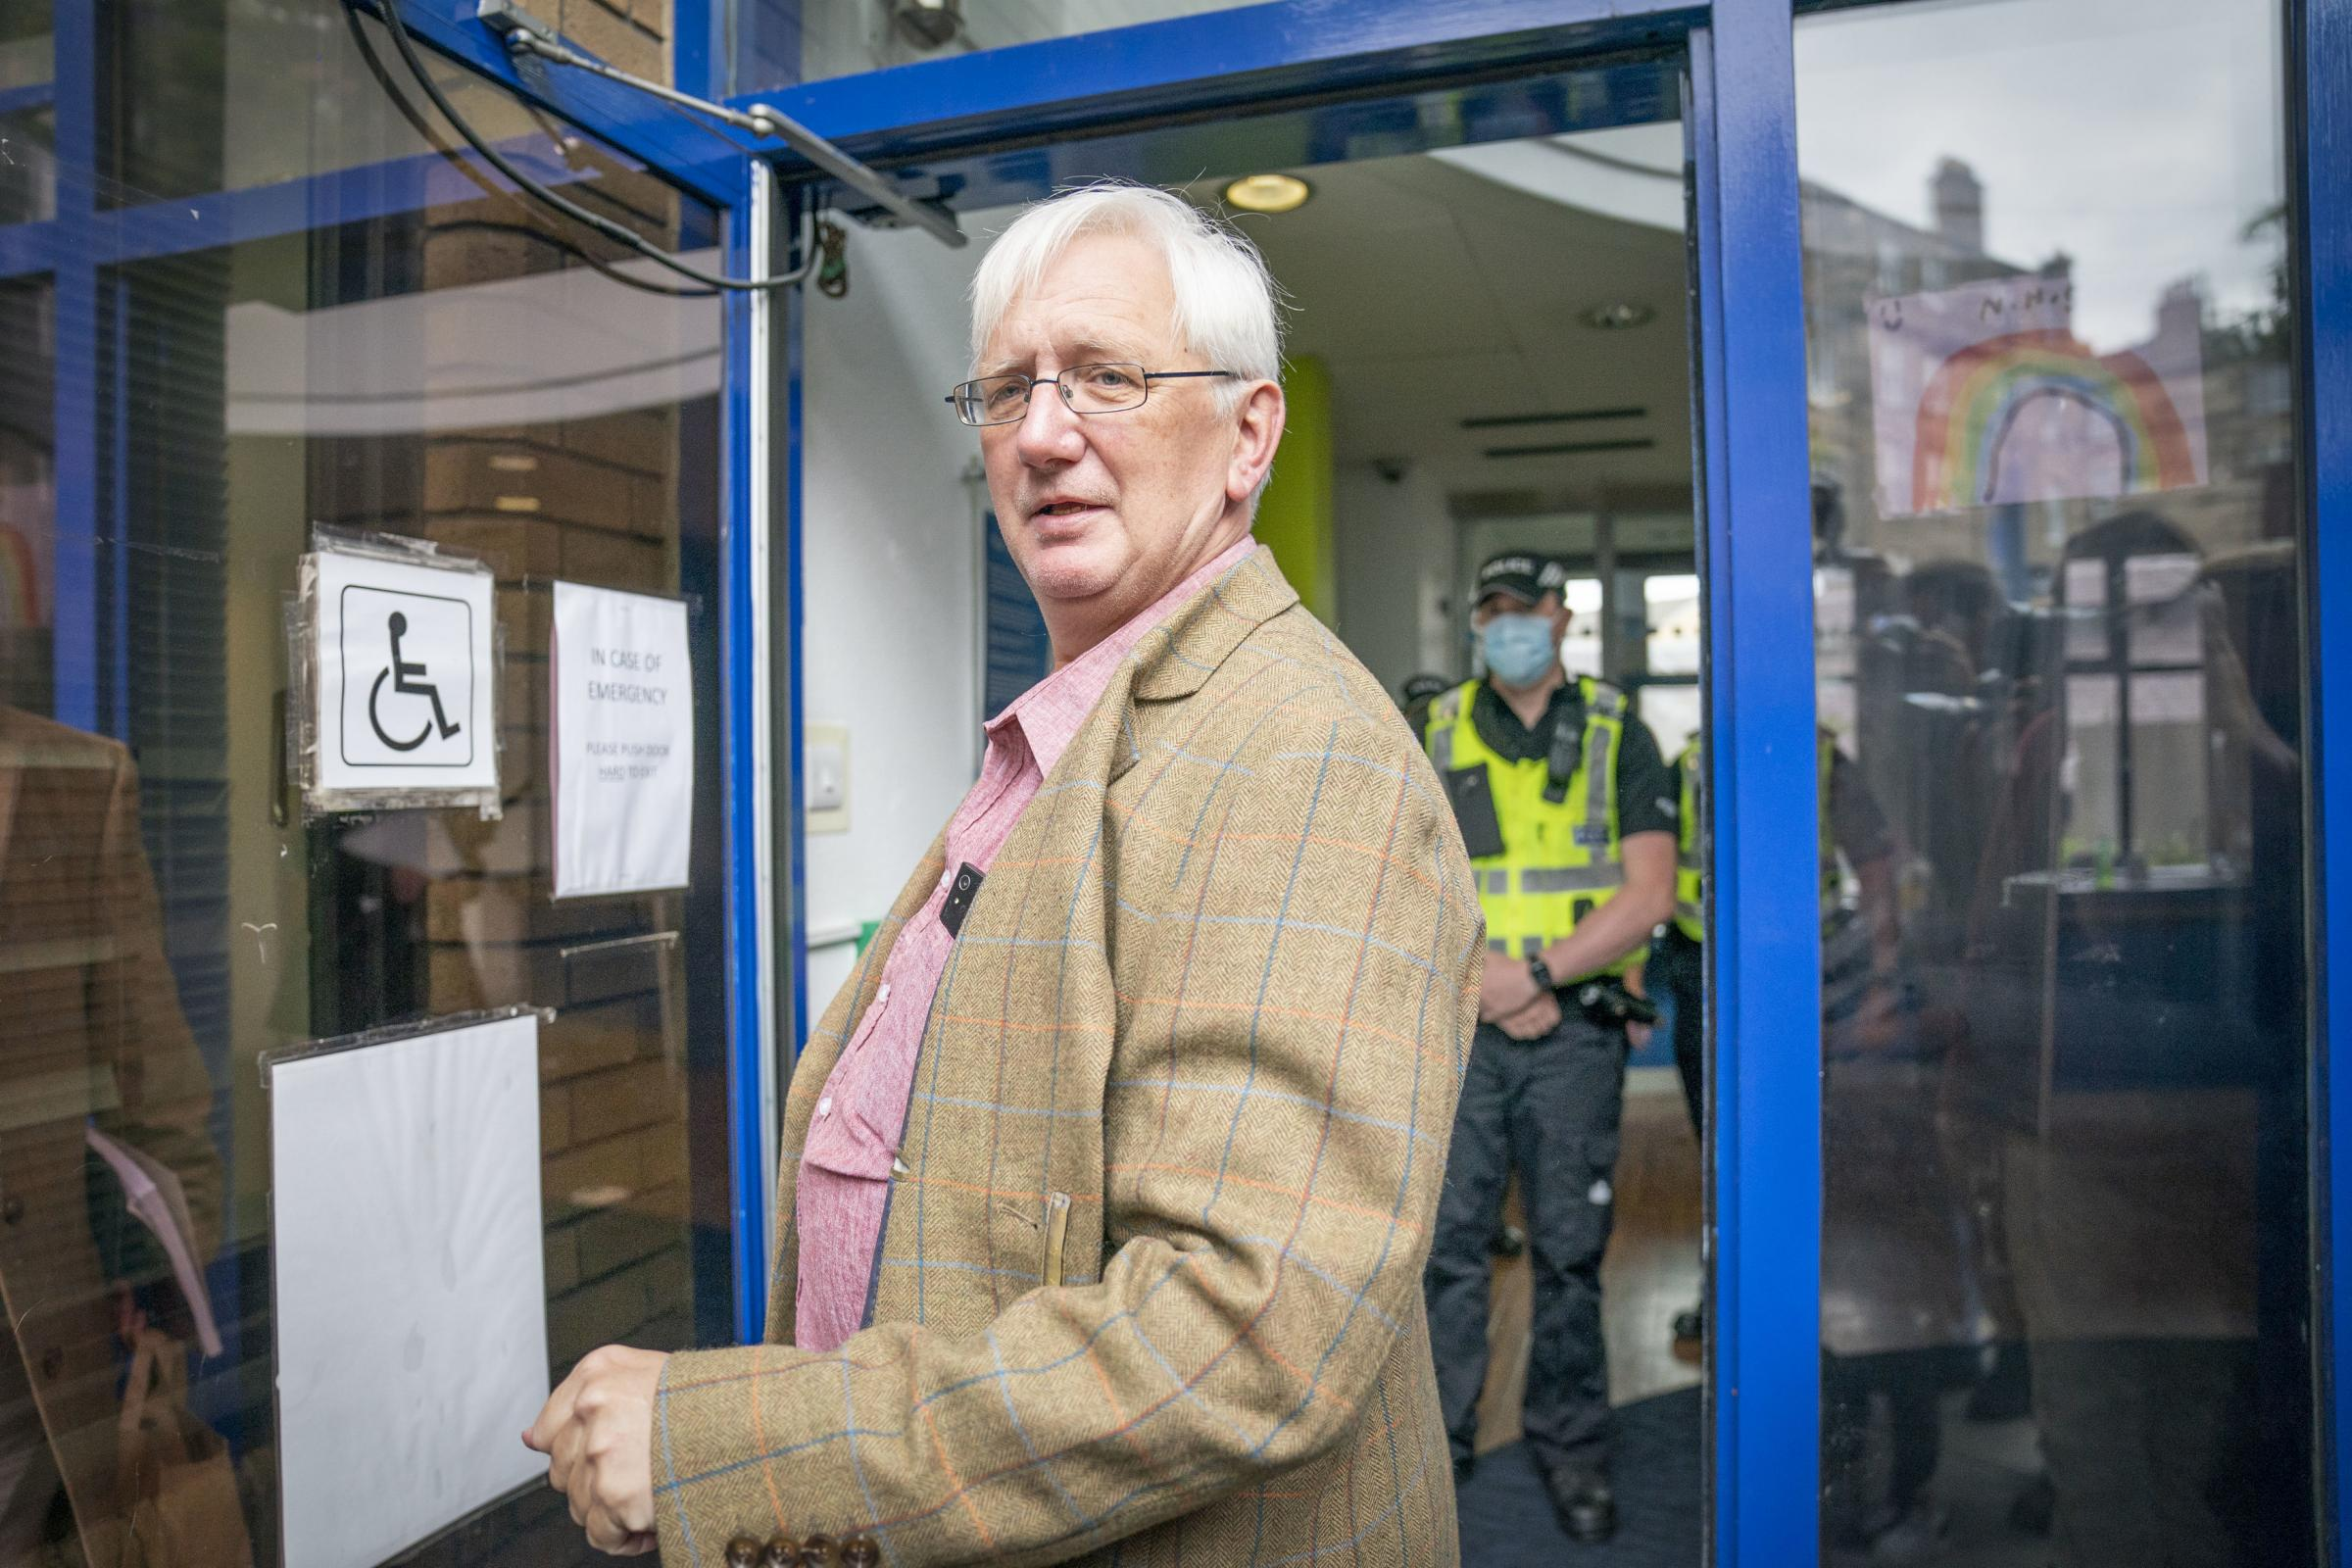 Union urged to act over Craig Murray's 'first in the world' prison sentence